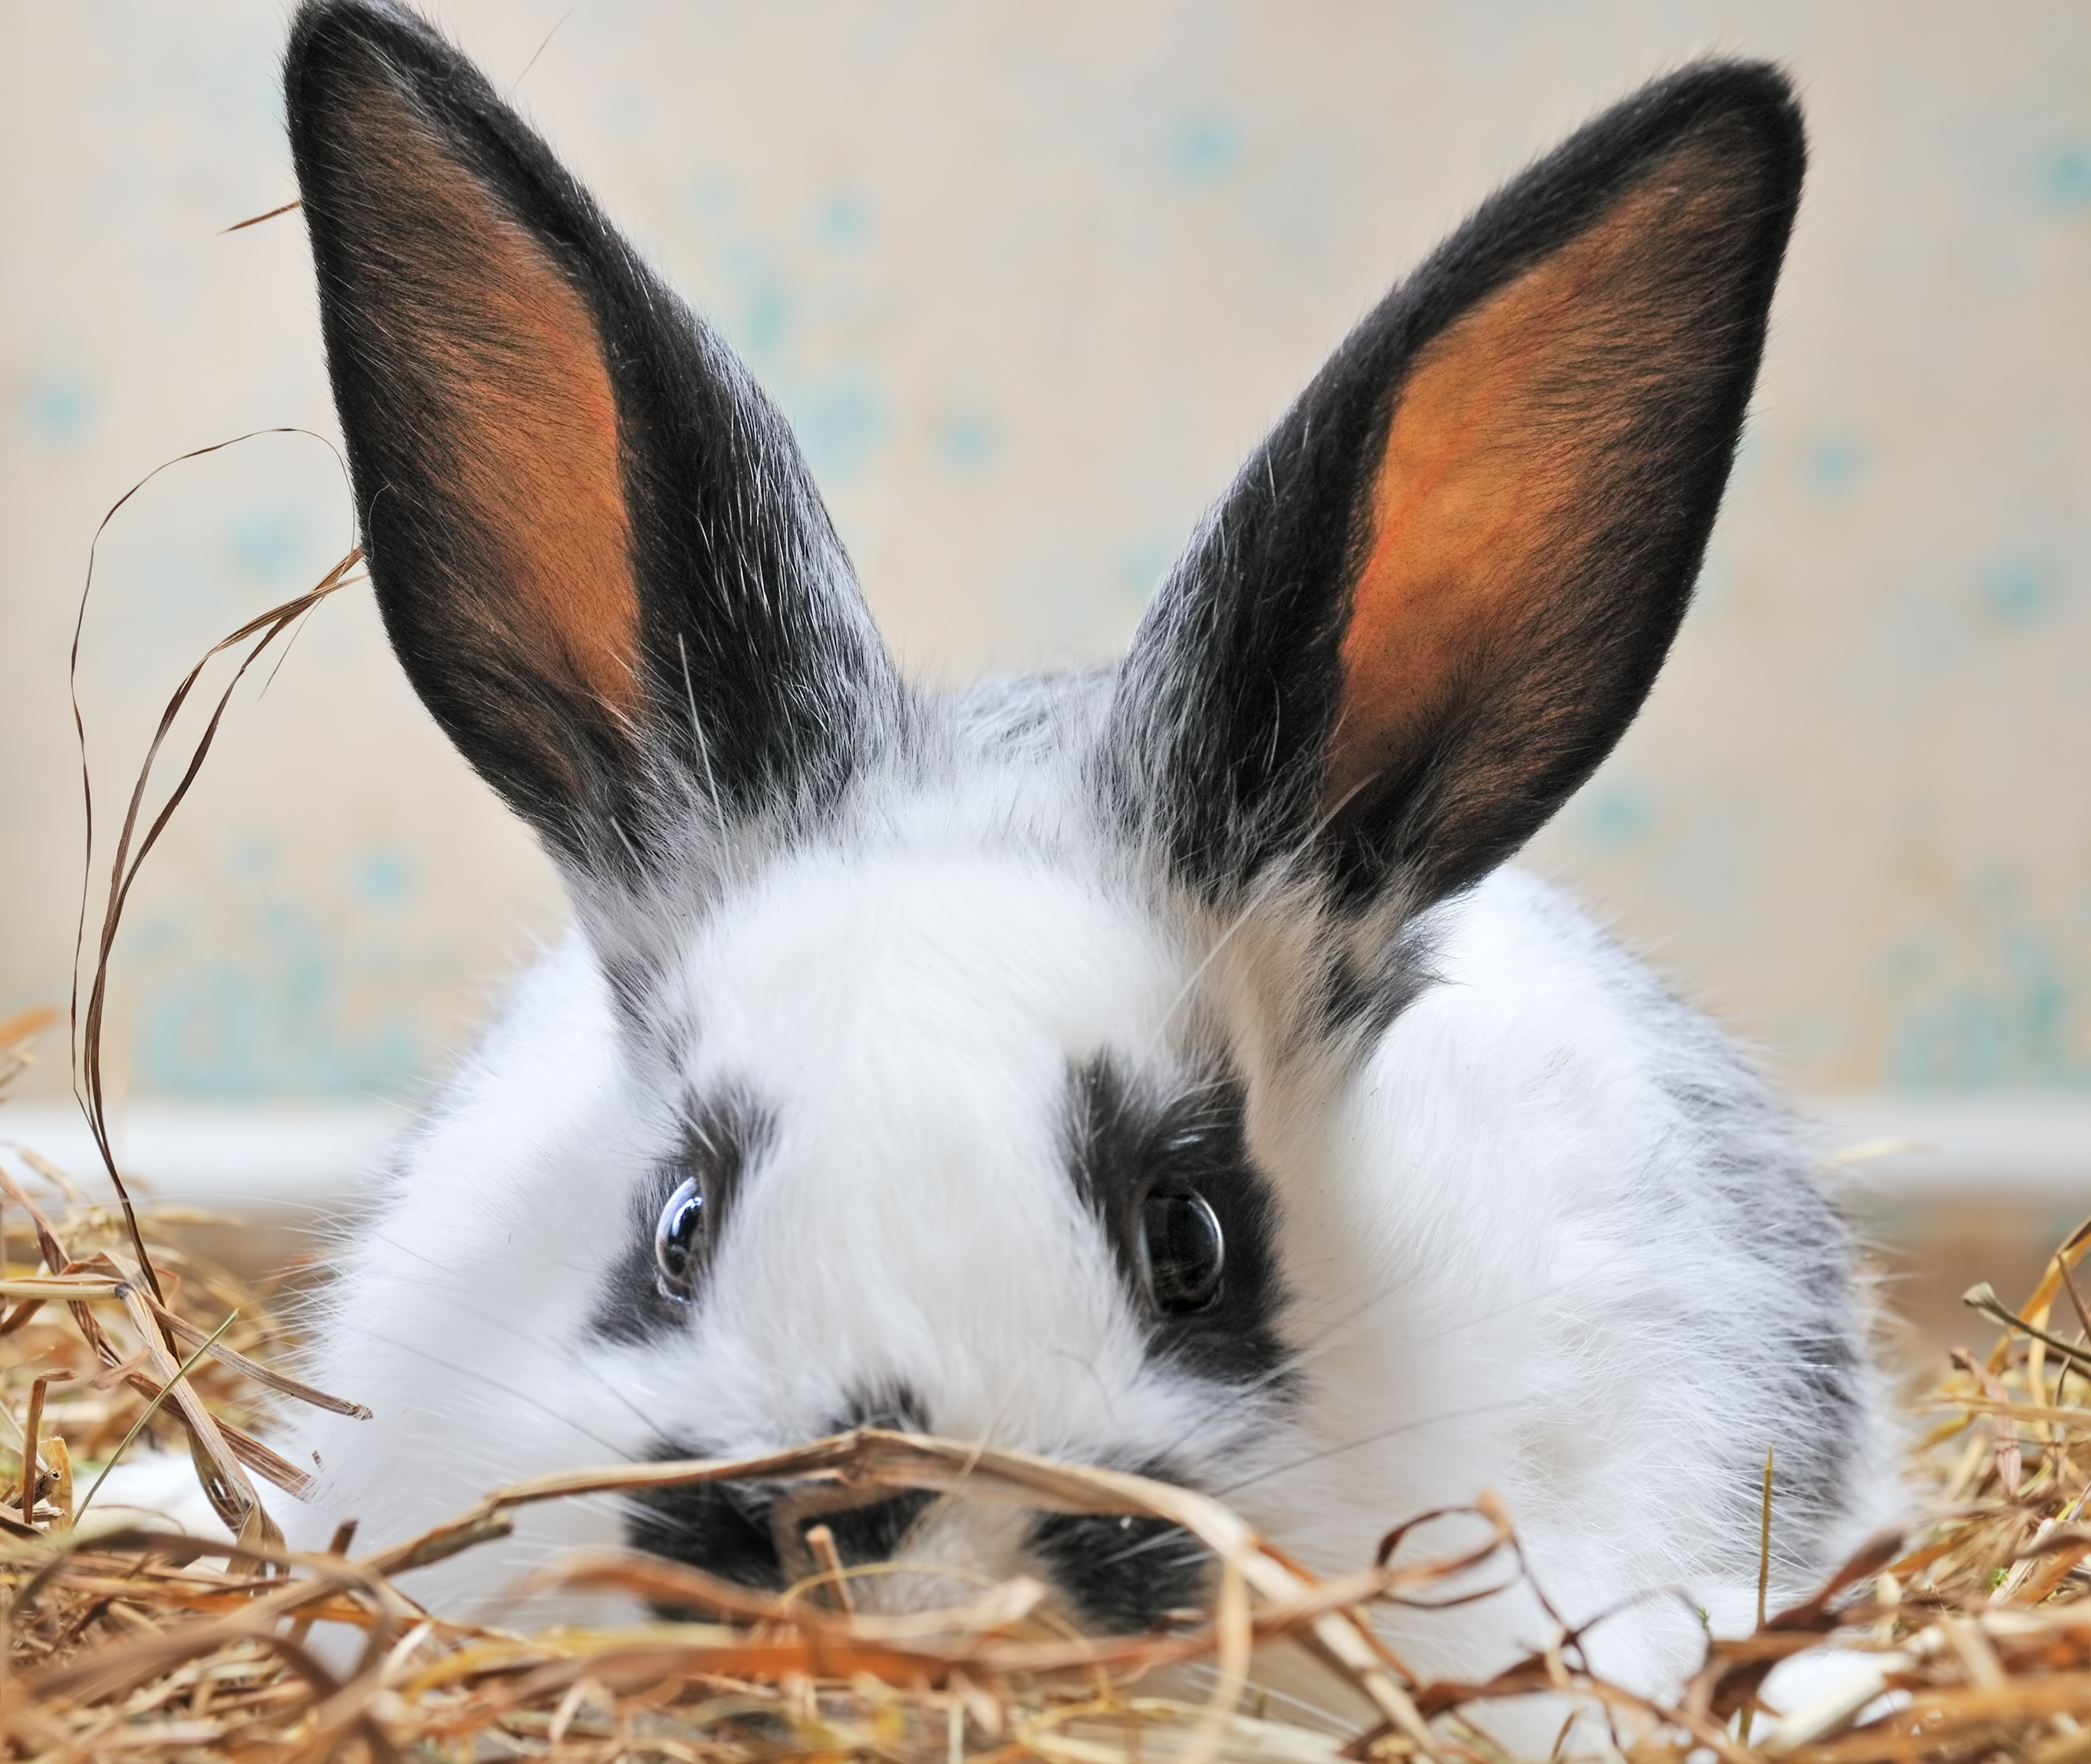 large eared black and white rabbit